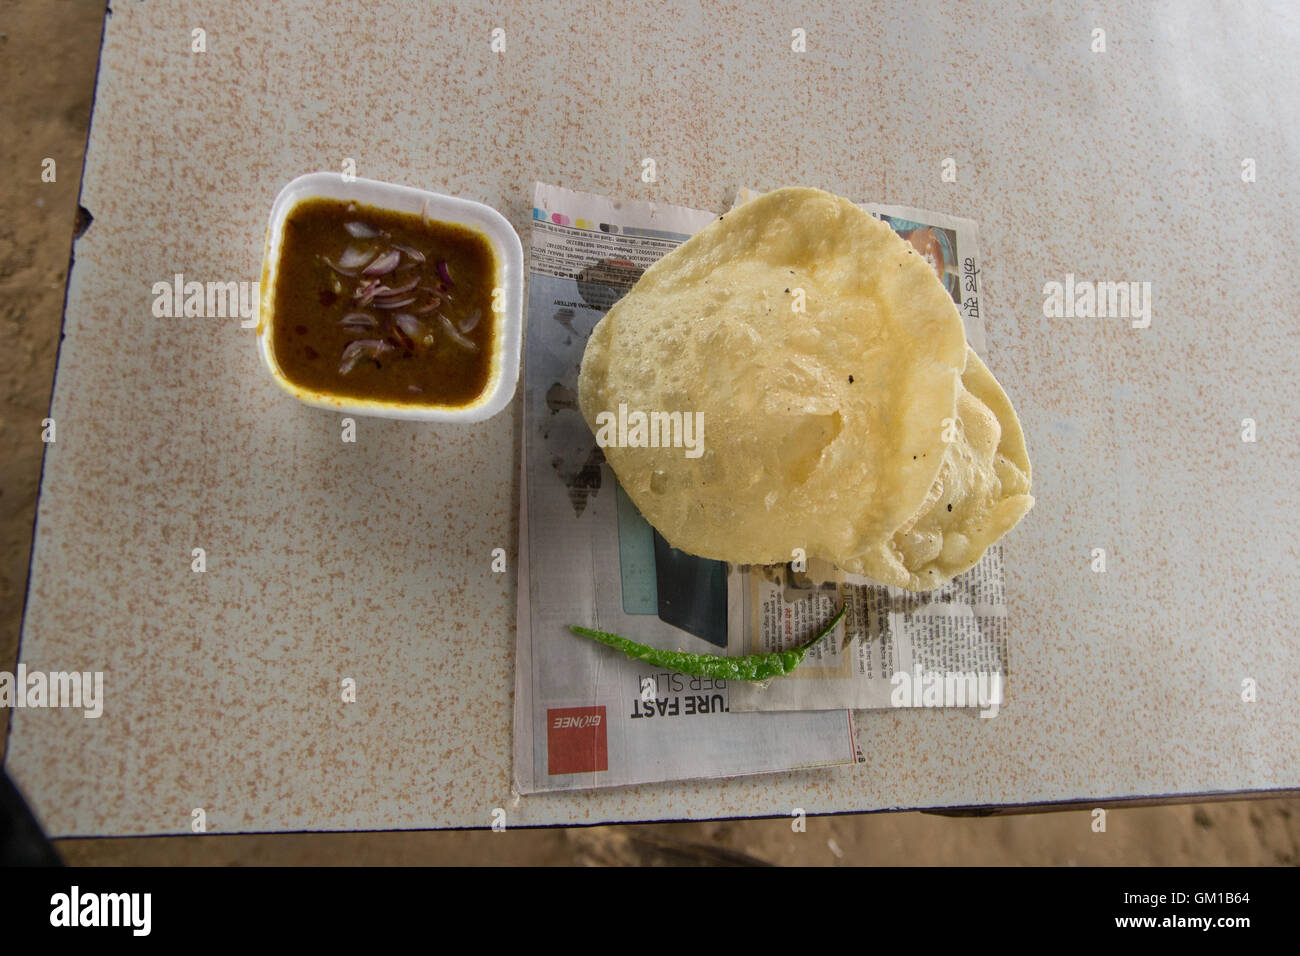 Chole Bahture Bhature Khulcha at a road side eatery in Digh near Bharatpur Rajasthan - Stock Image